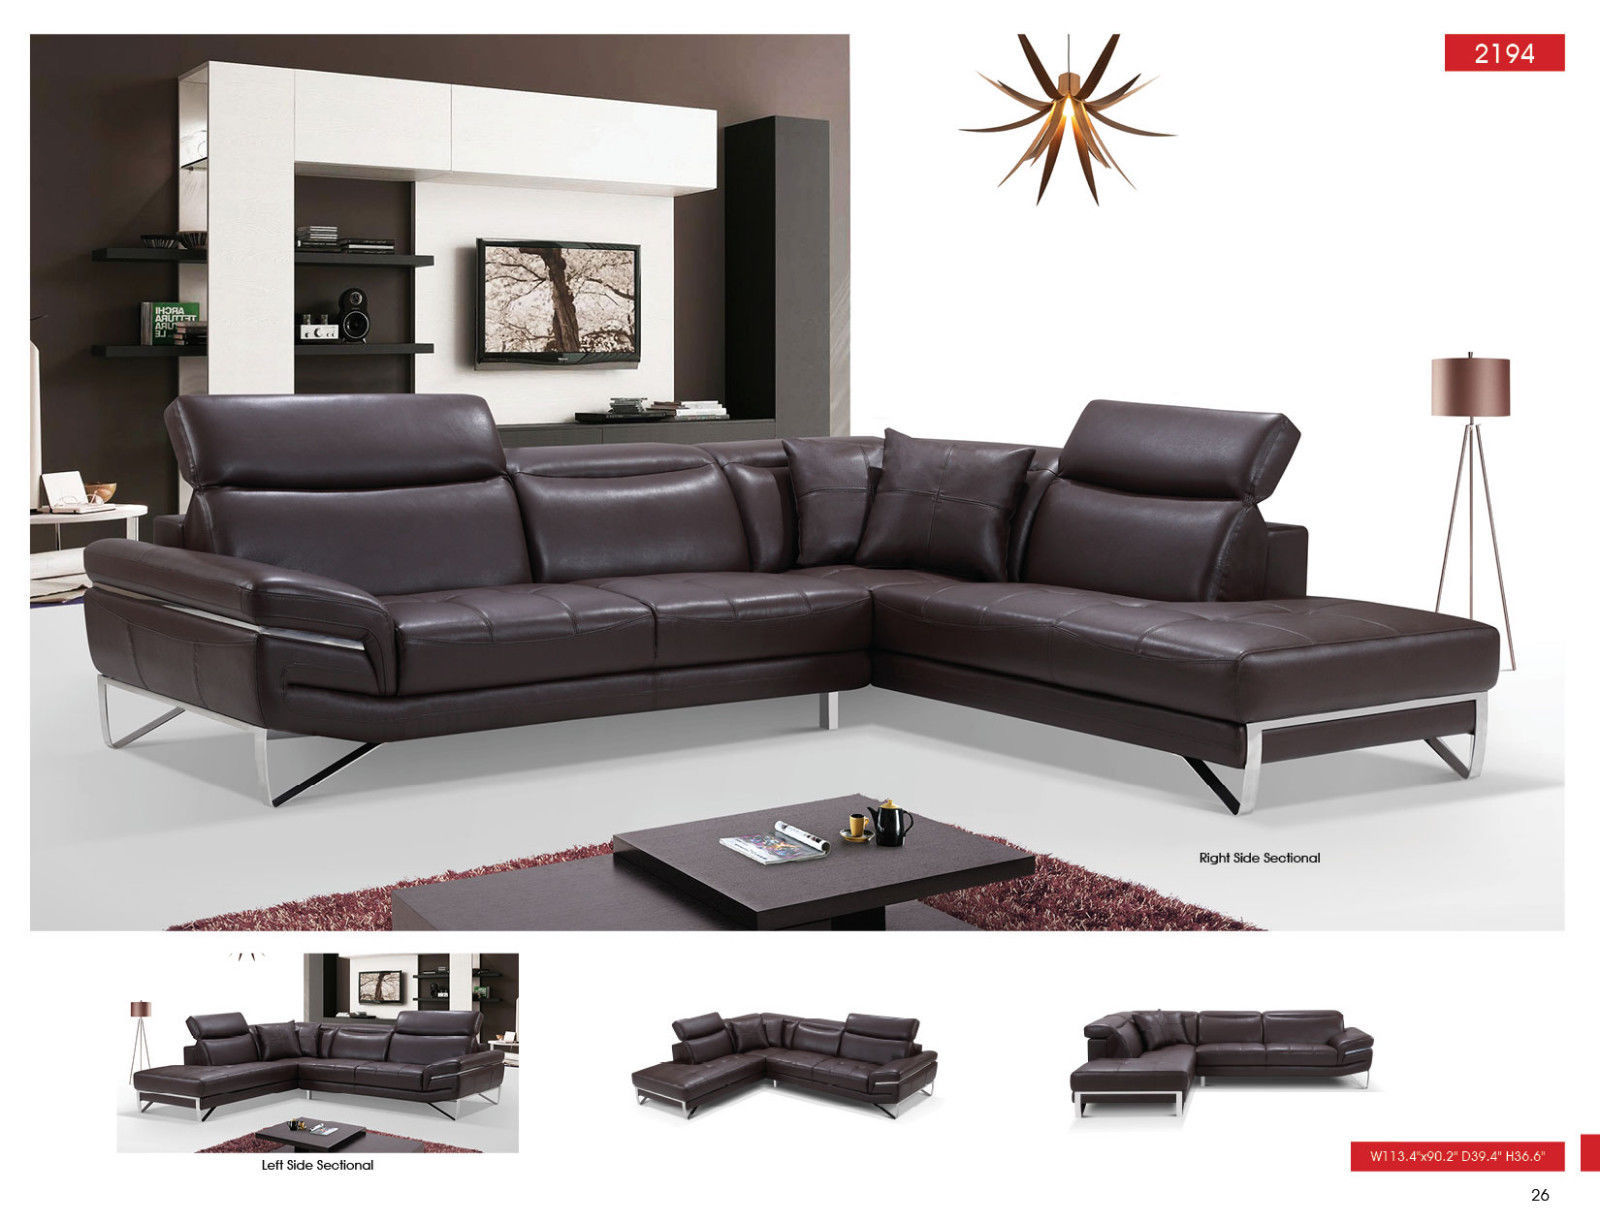 ESF 2194 Leather Sectional Sofa Brown Chic Contemporary Modern Right Hand Facing